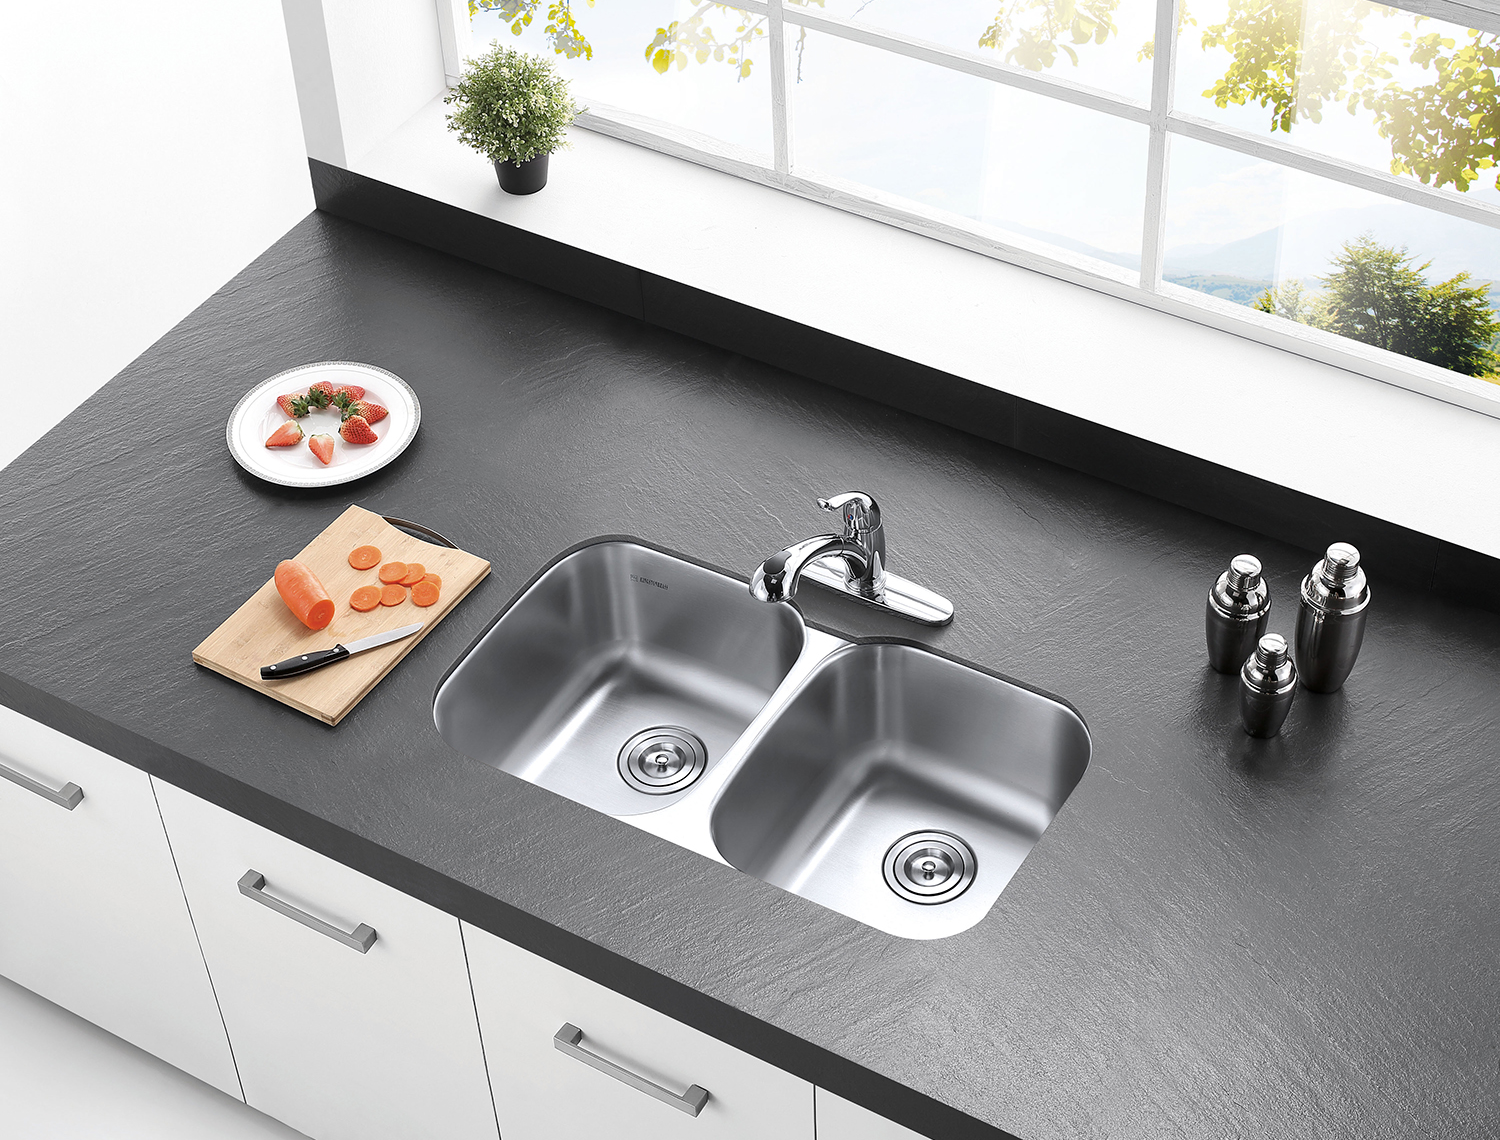 Kitchen Sink Fixtures   The Perfect Kitchen Sink And Faucet Pairing Kingston Brass